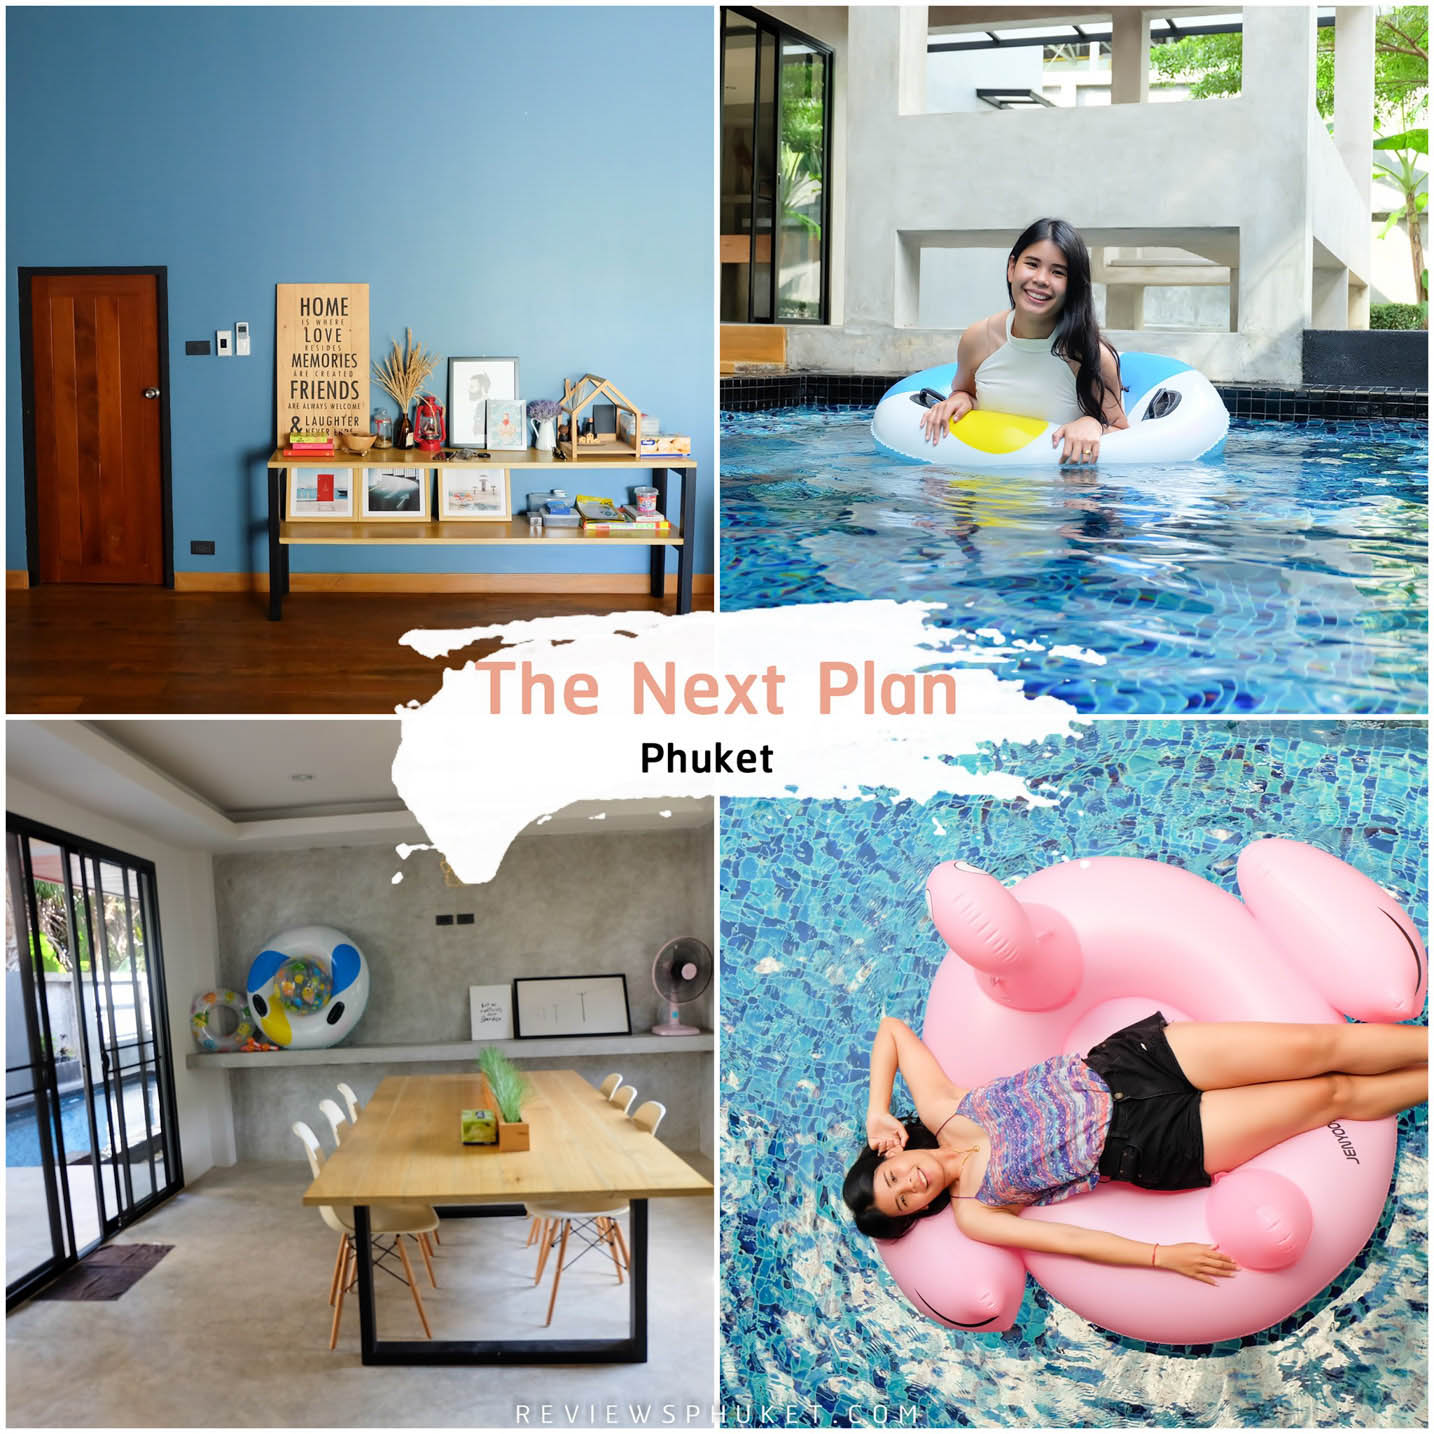 The Next Plan Phuket